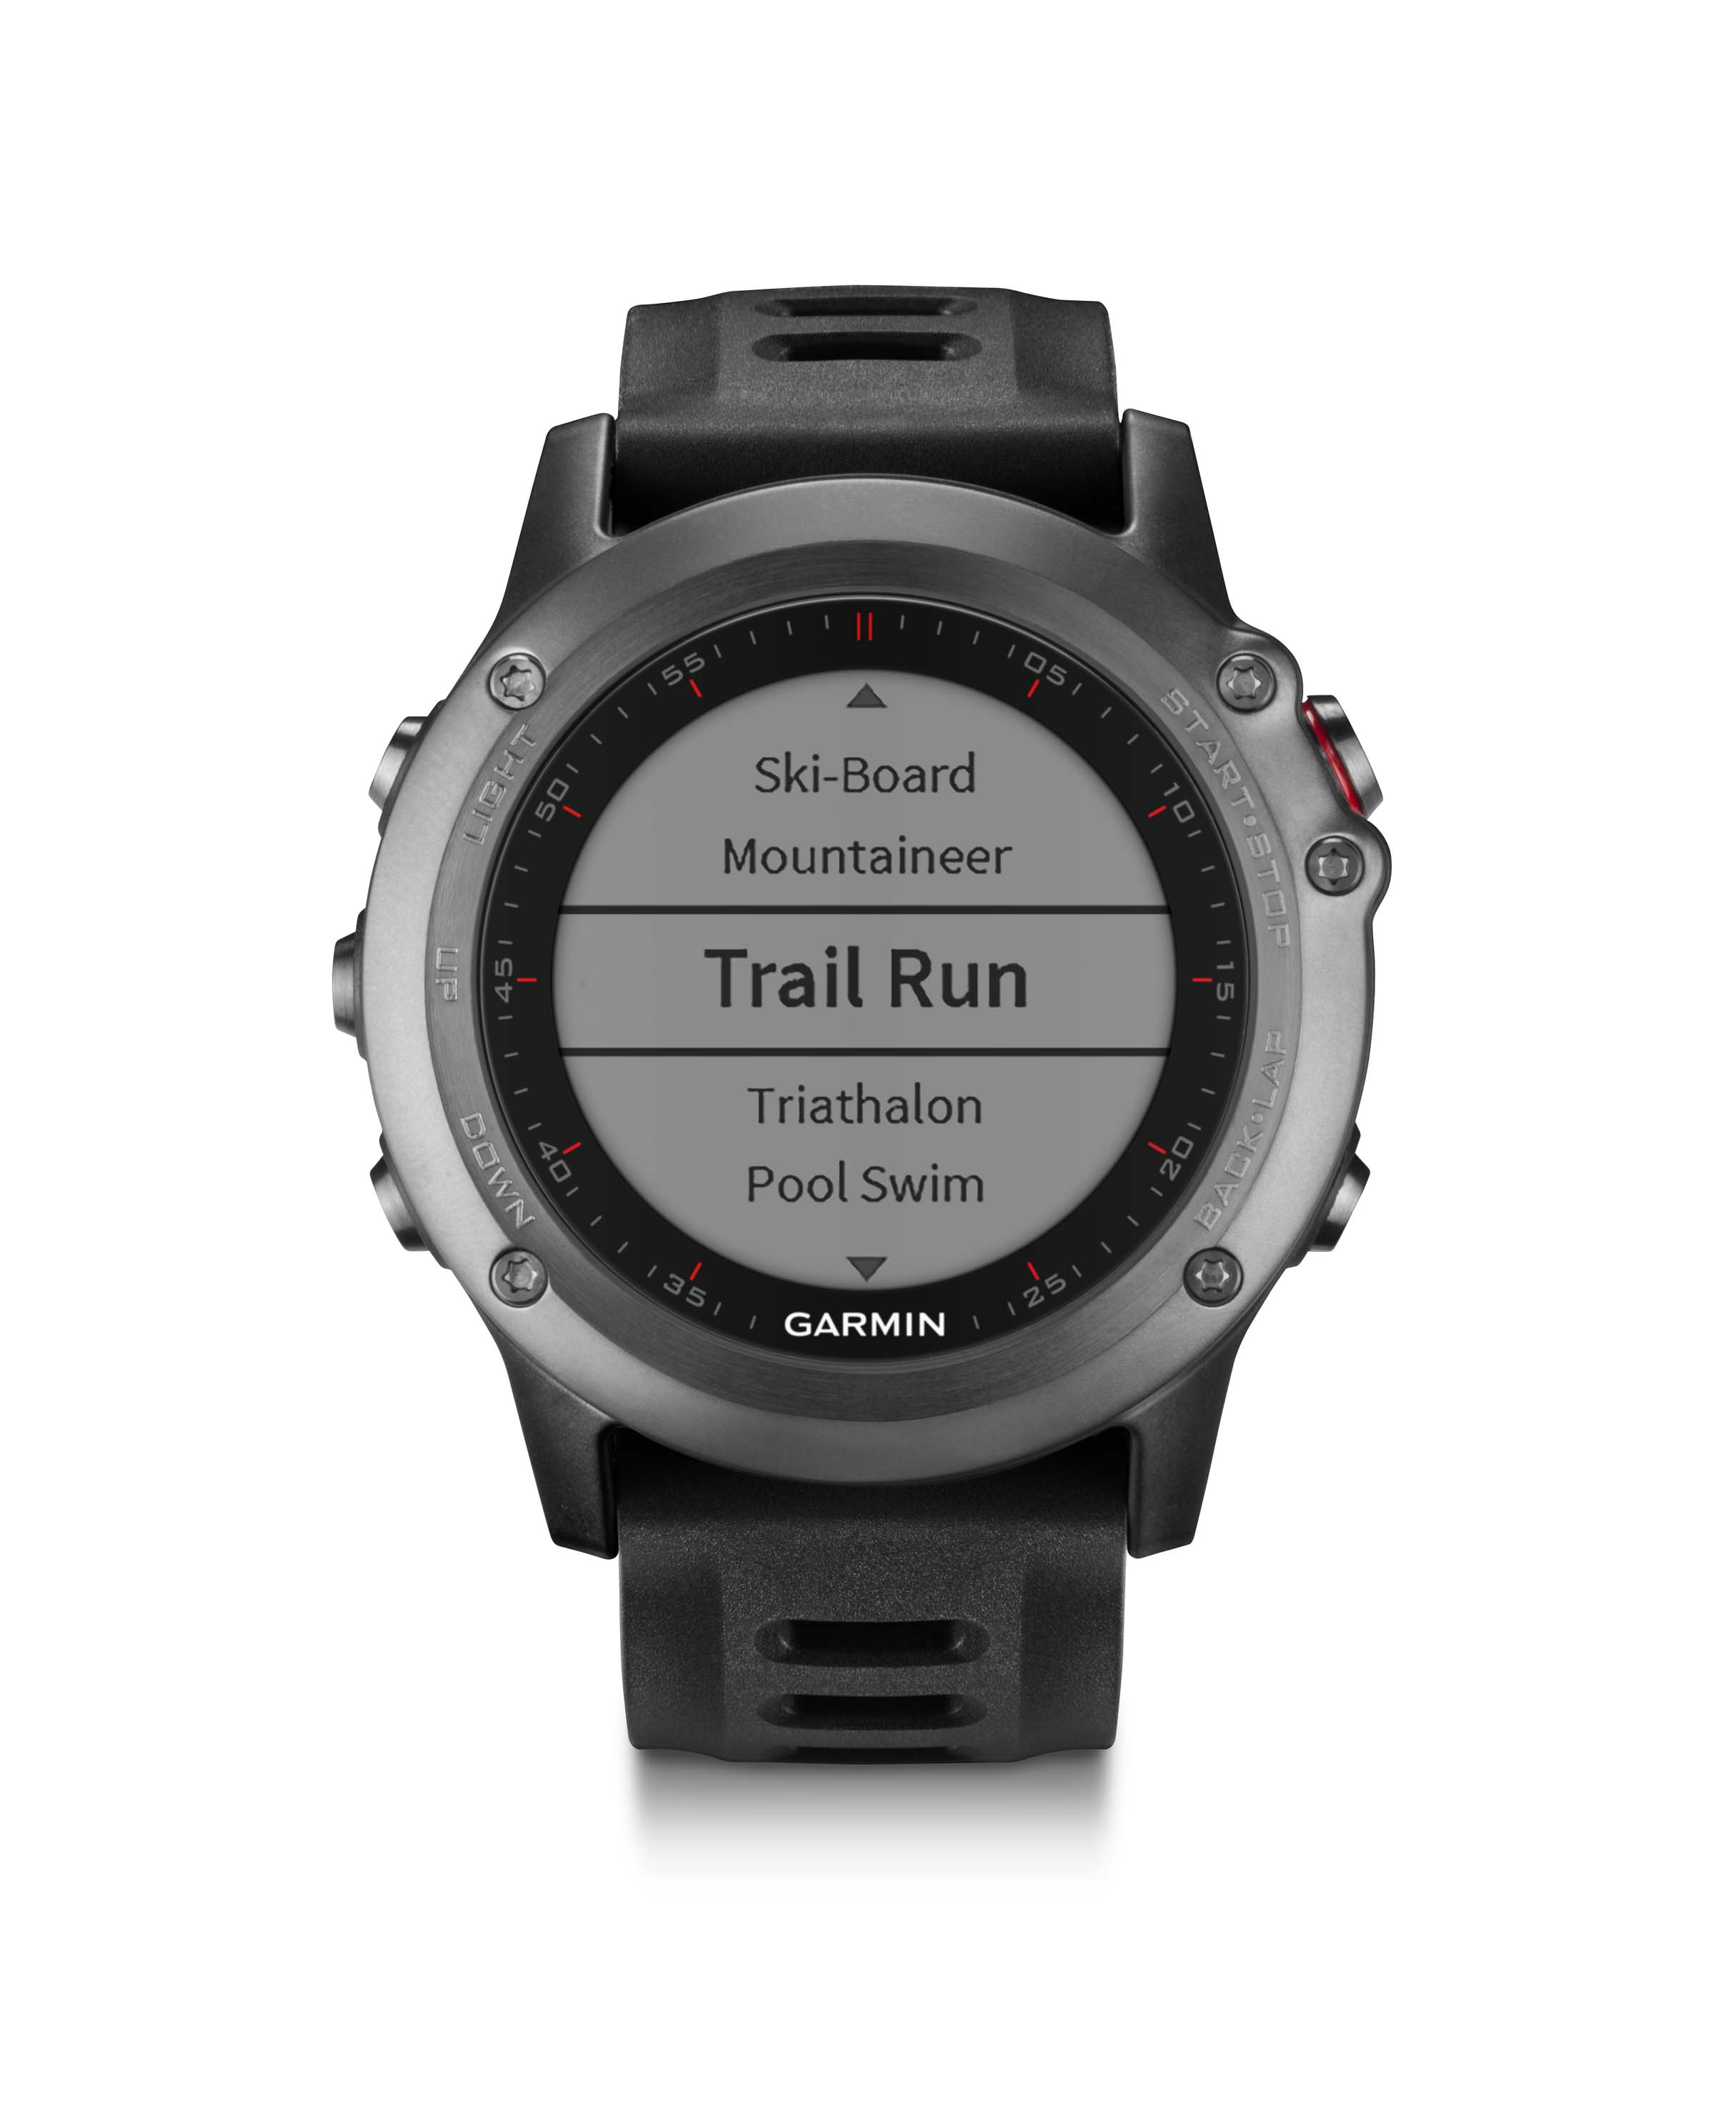 GARMIN_Fenix3_grey-10.jpg